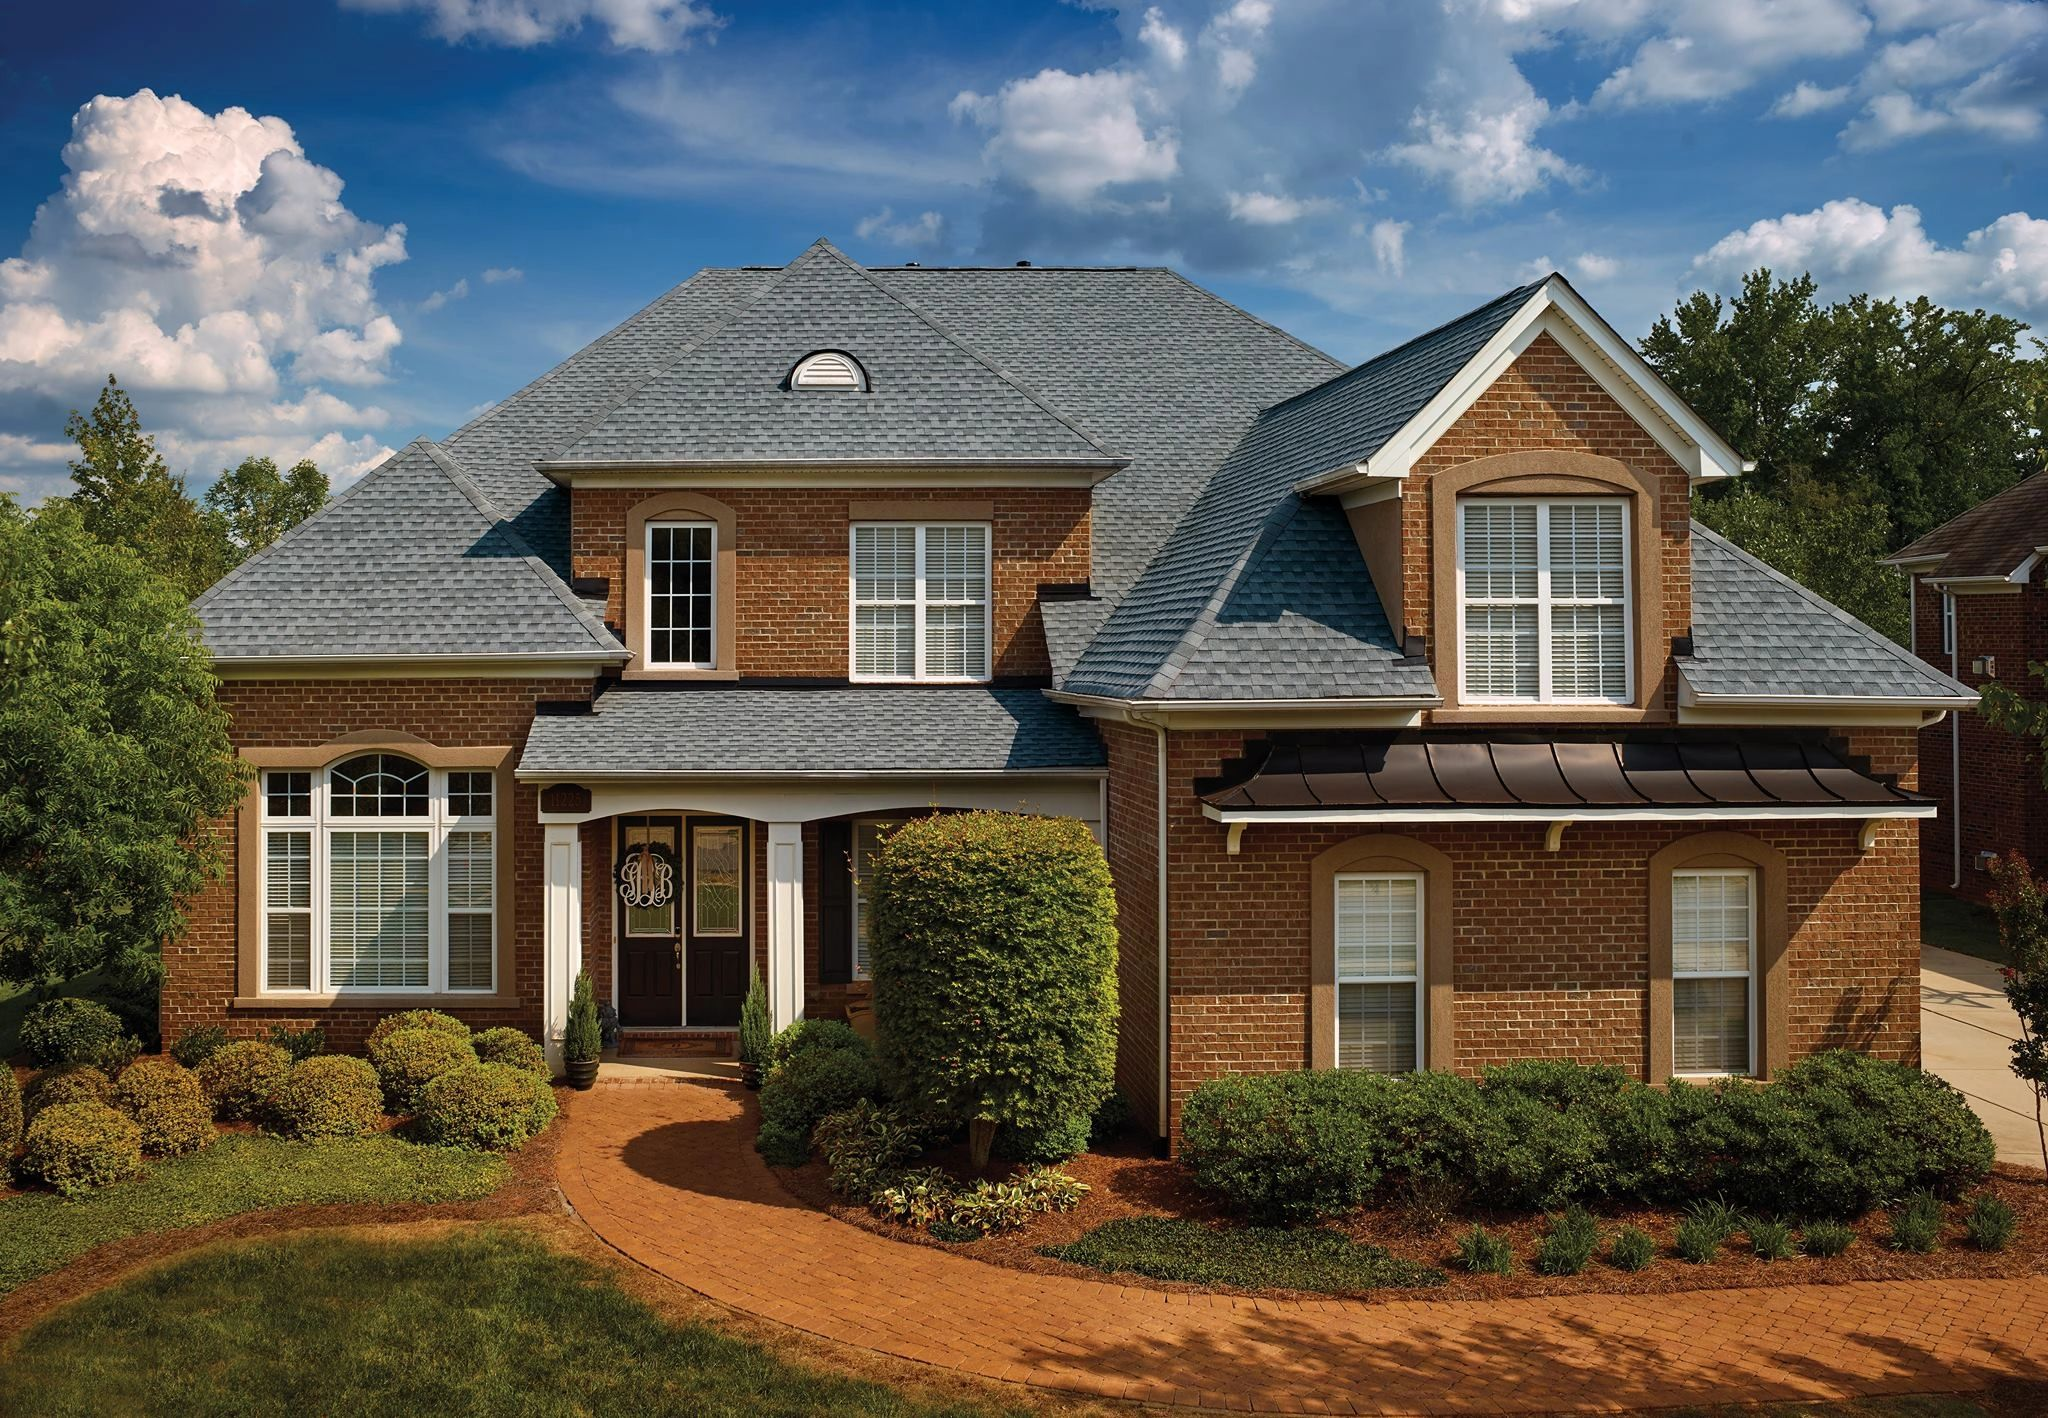 Calpro Roofing